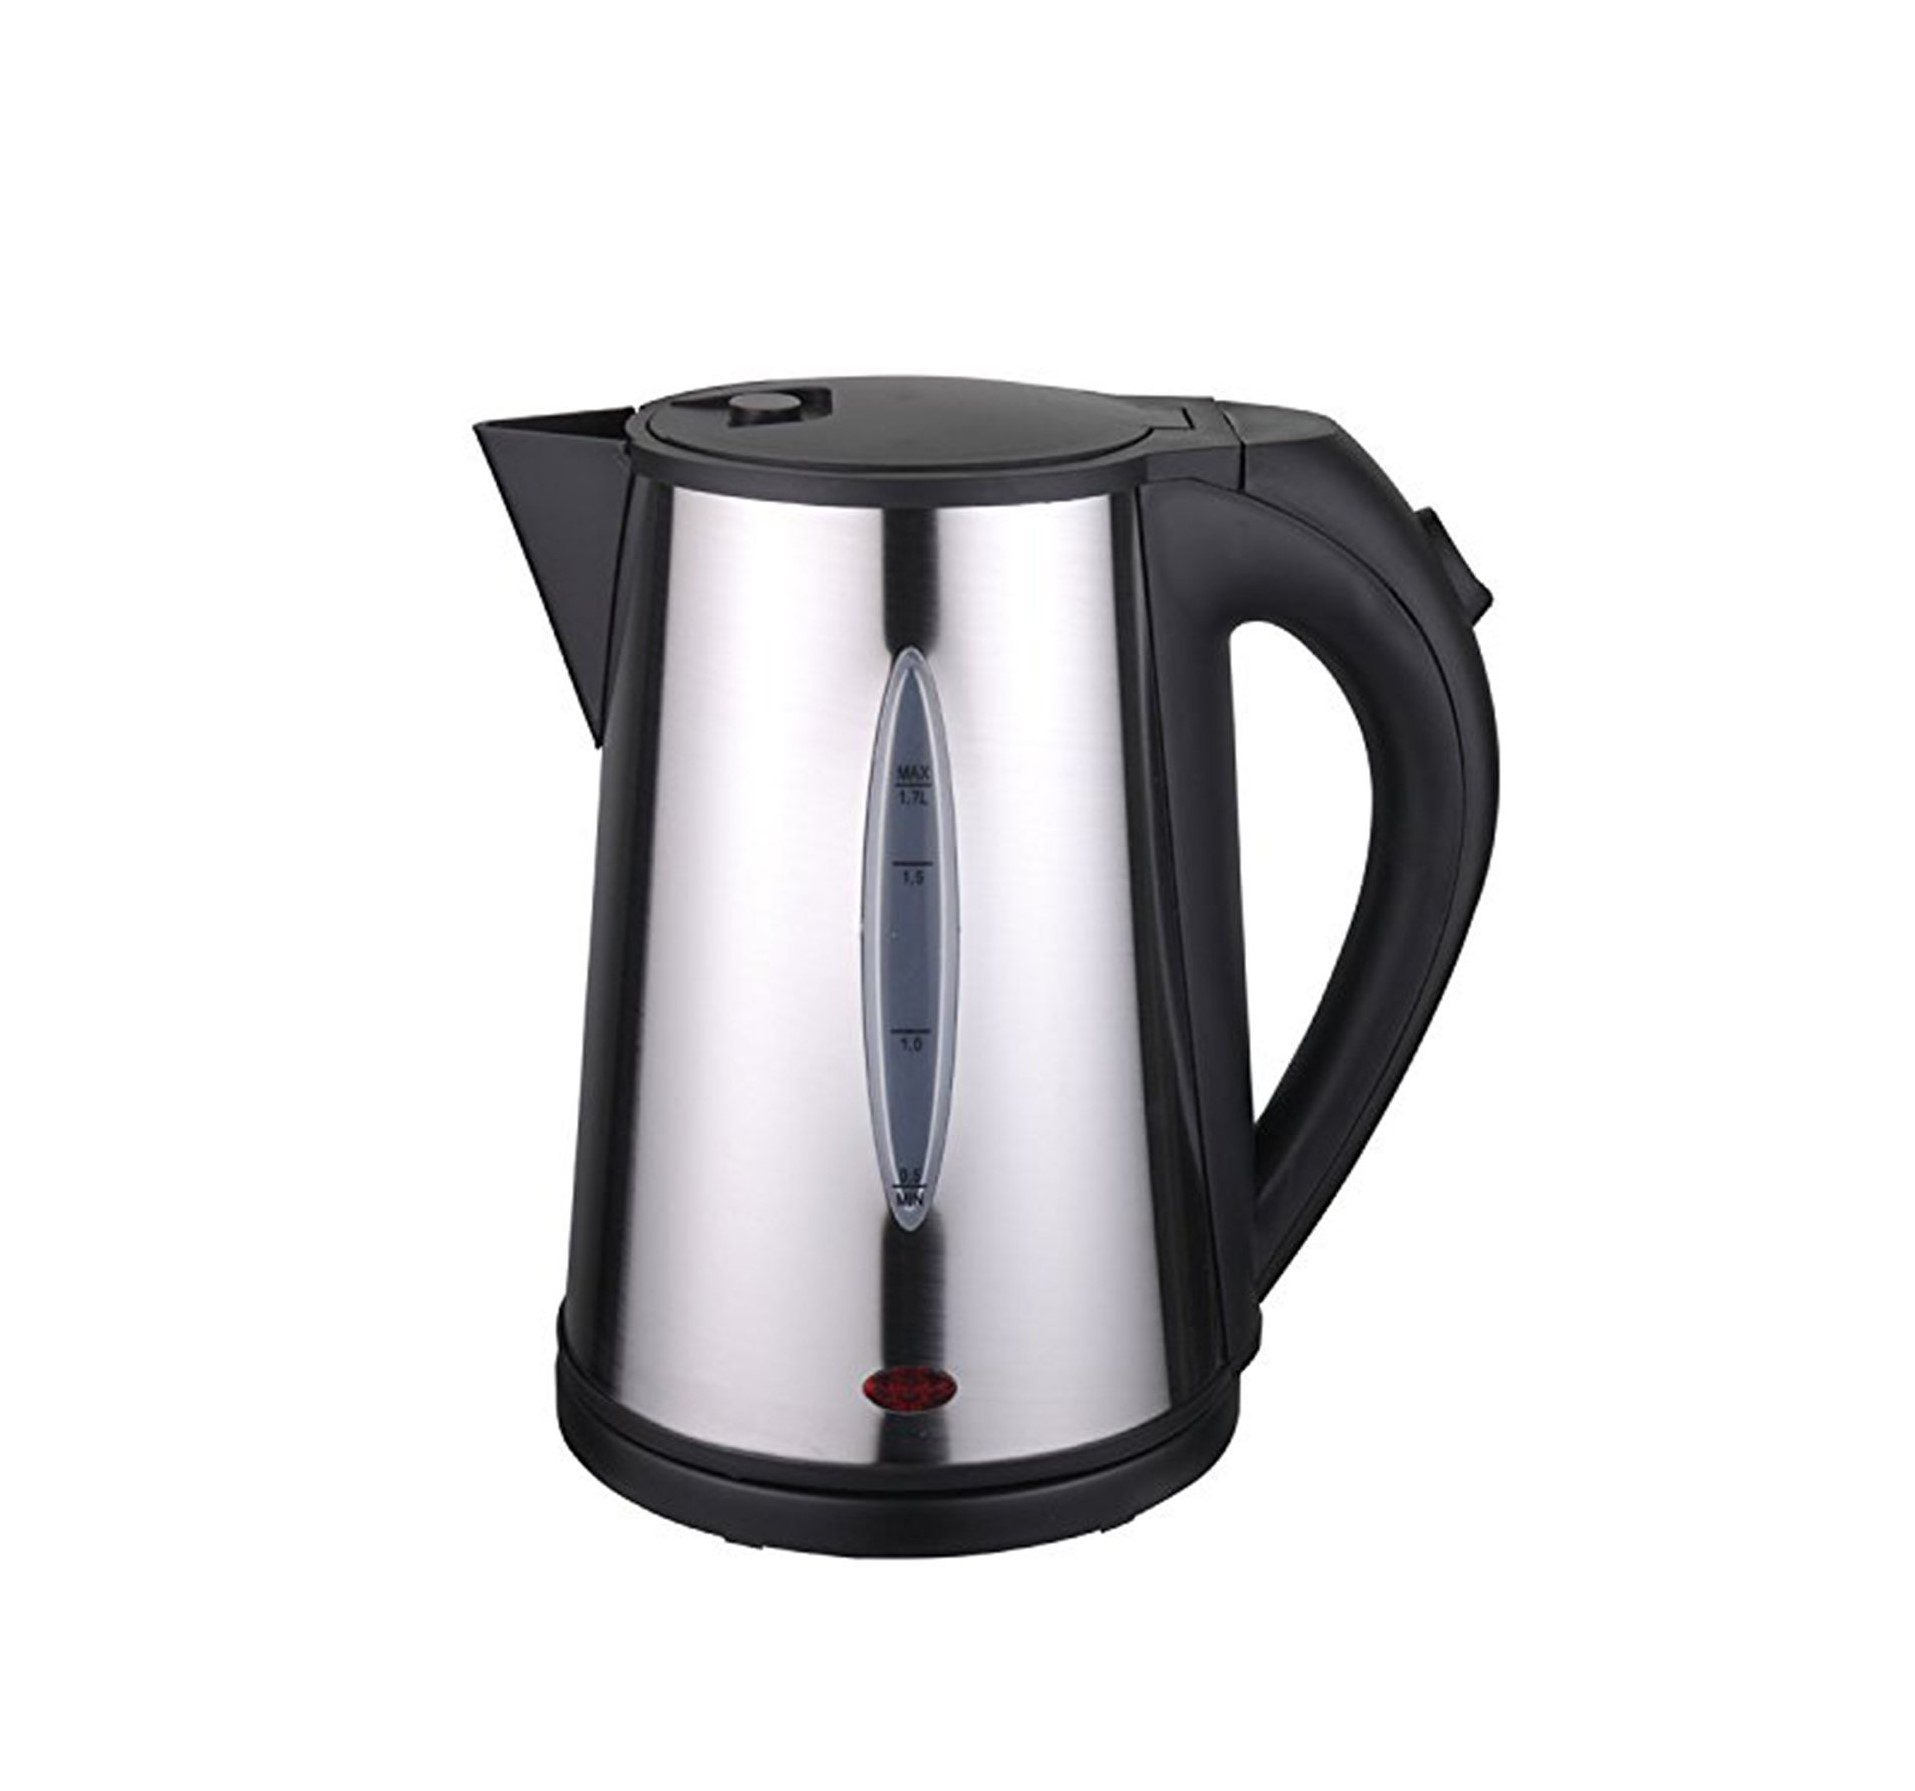 Sunncamp Low Watt Stainless Steel Kettle